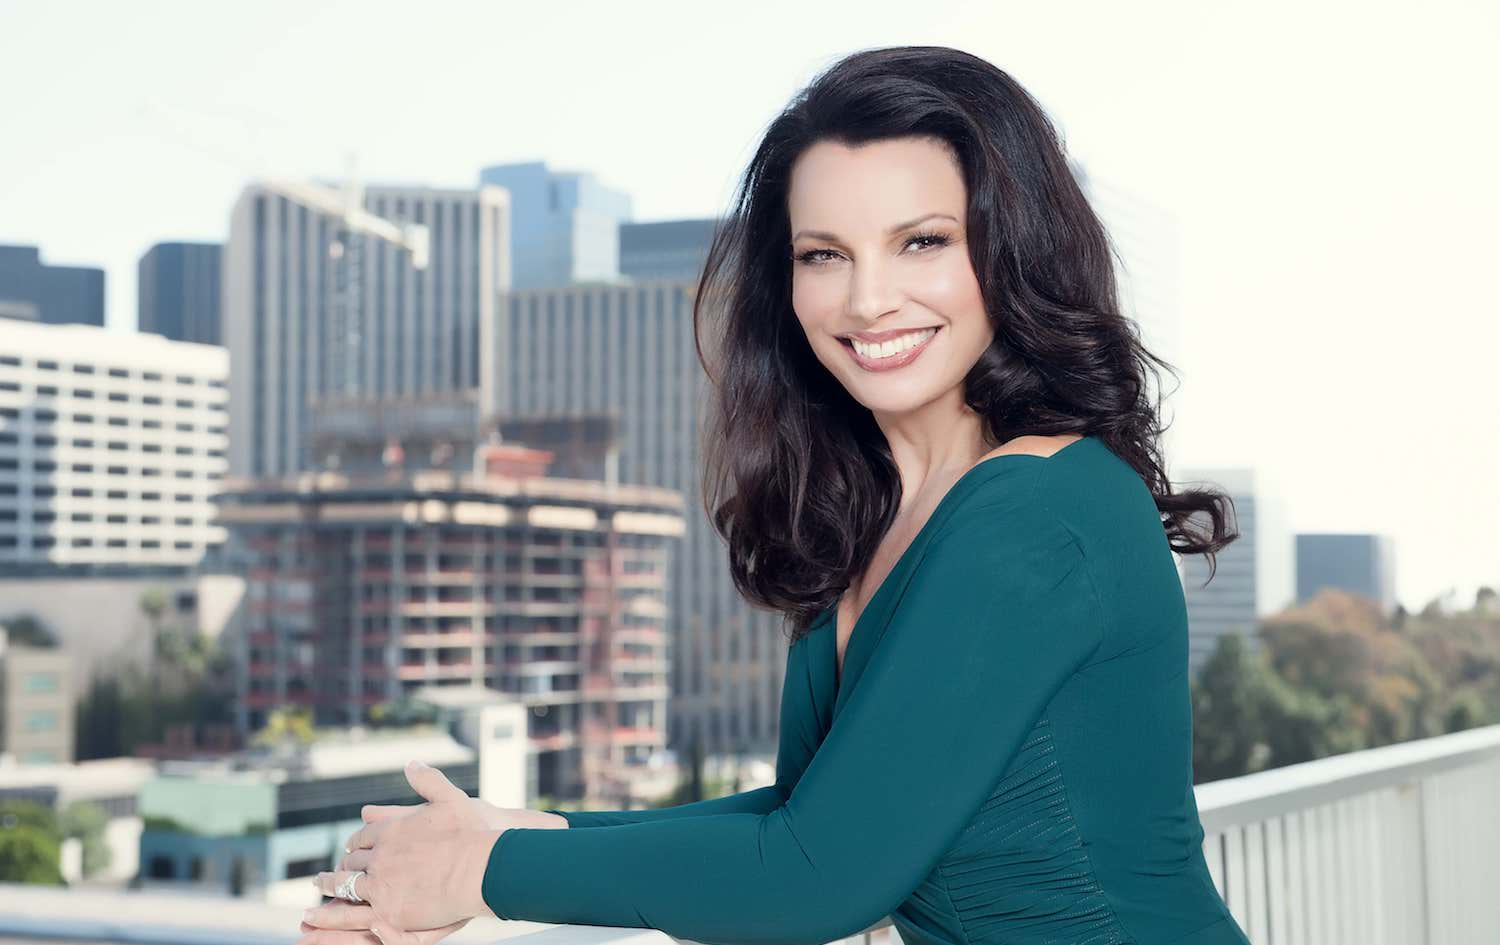 Cancer Schmancer President and actress Fran Drescher exposes a health system that downplays the roles of nutrition, spiritual happiness, and whole-body wellbeing in cancer and disease recovery.